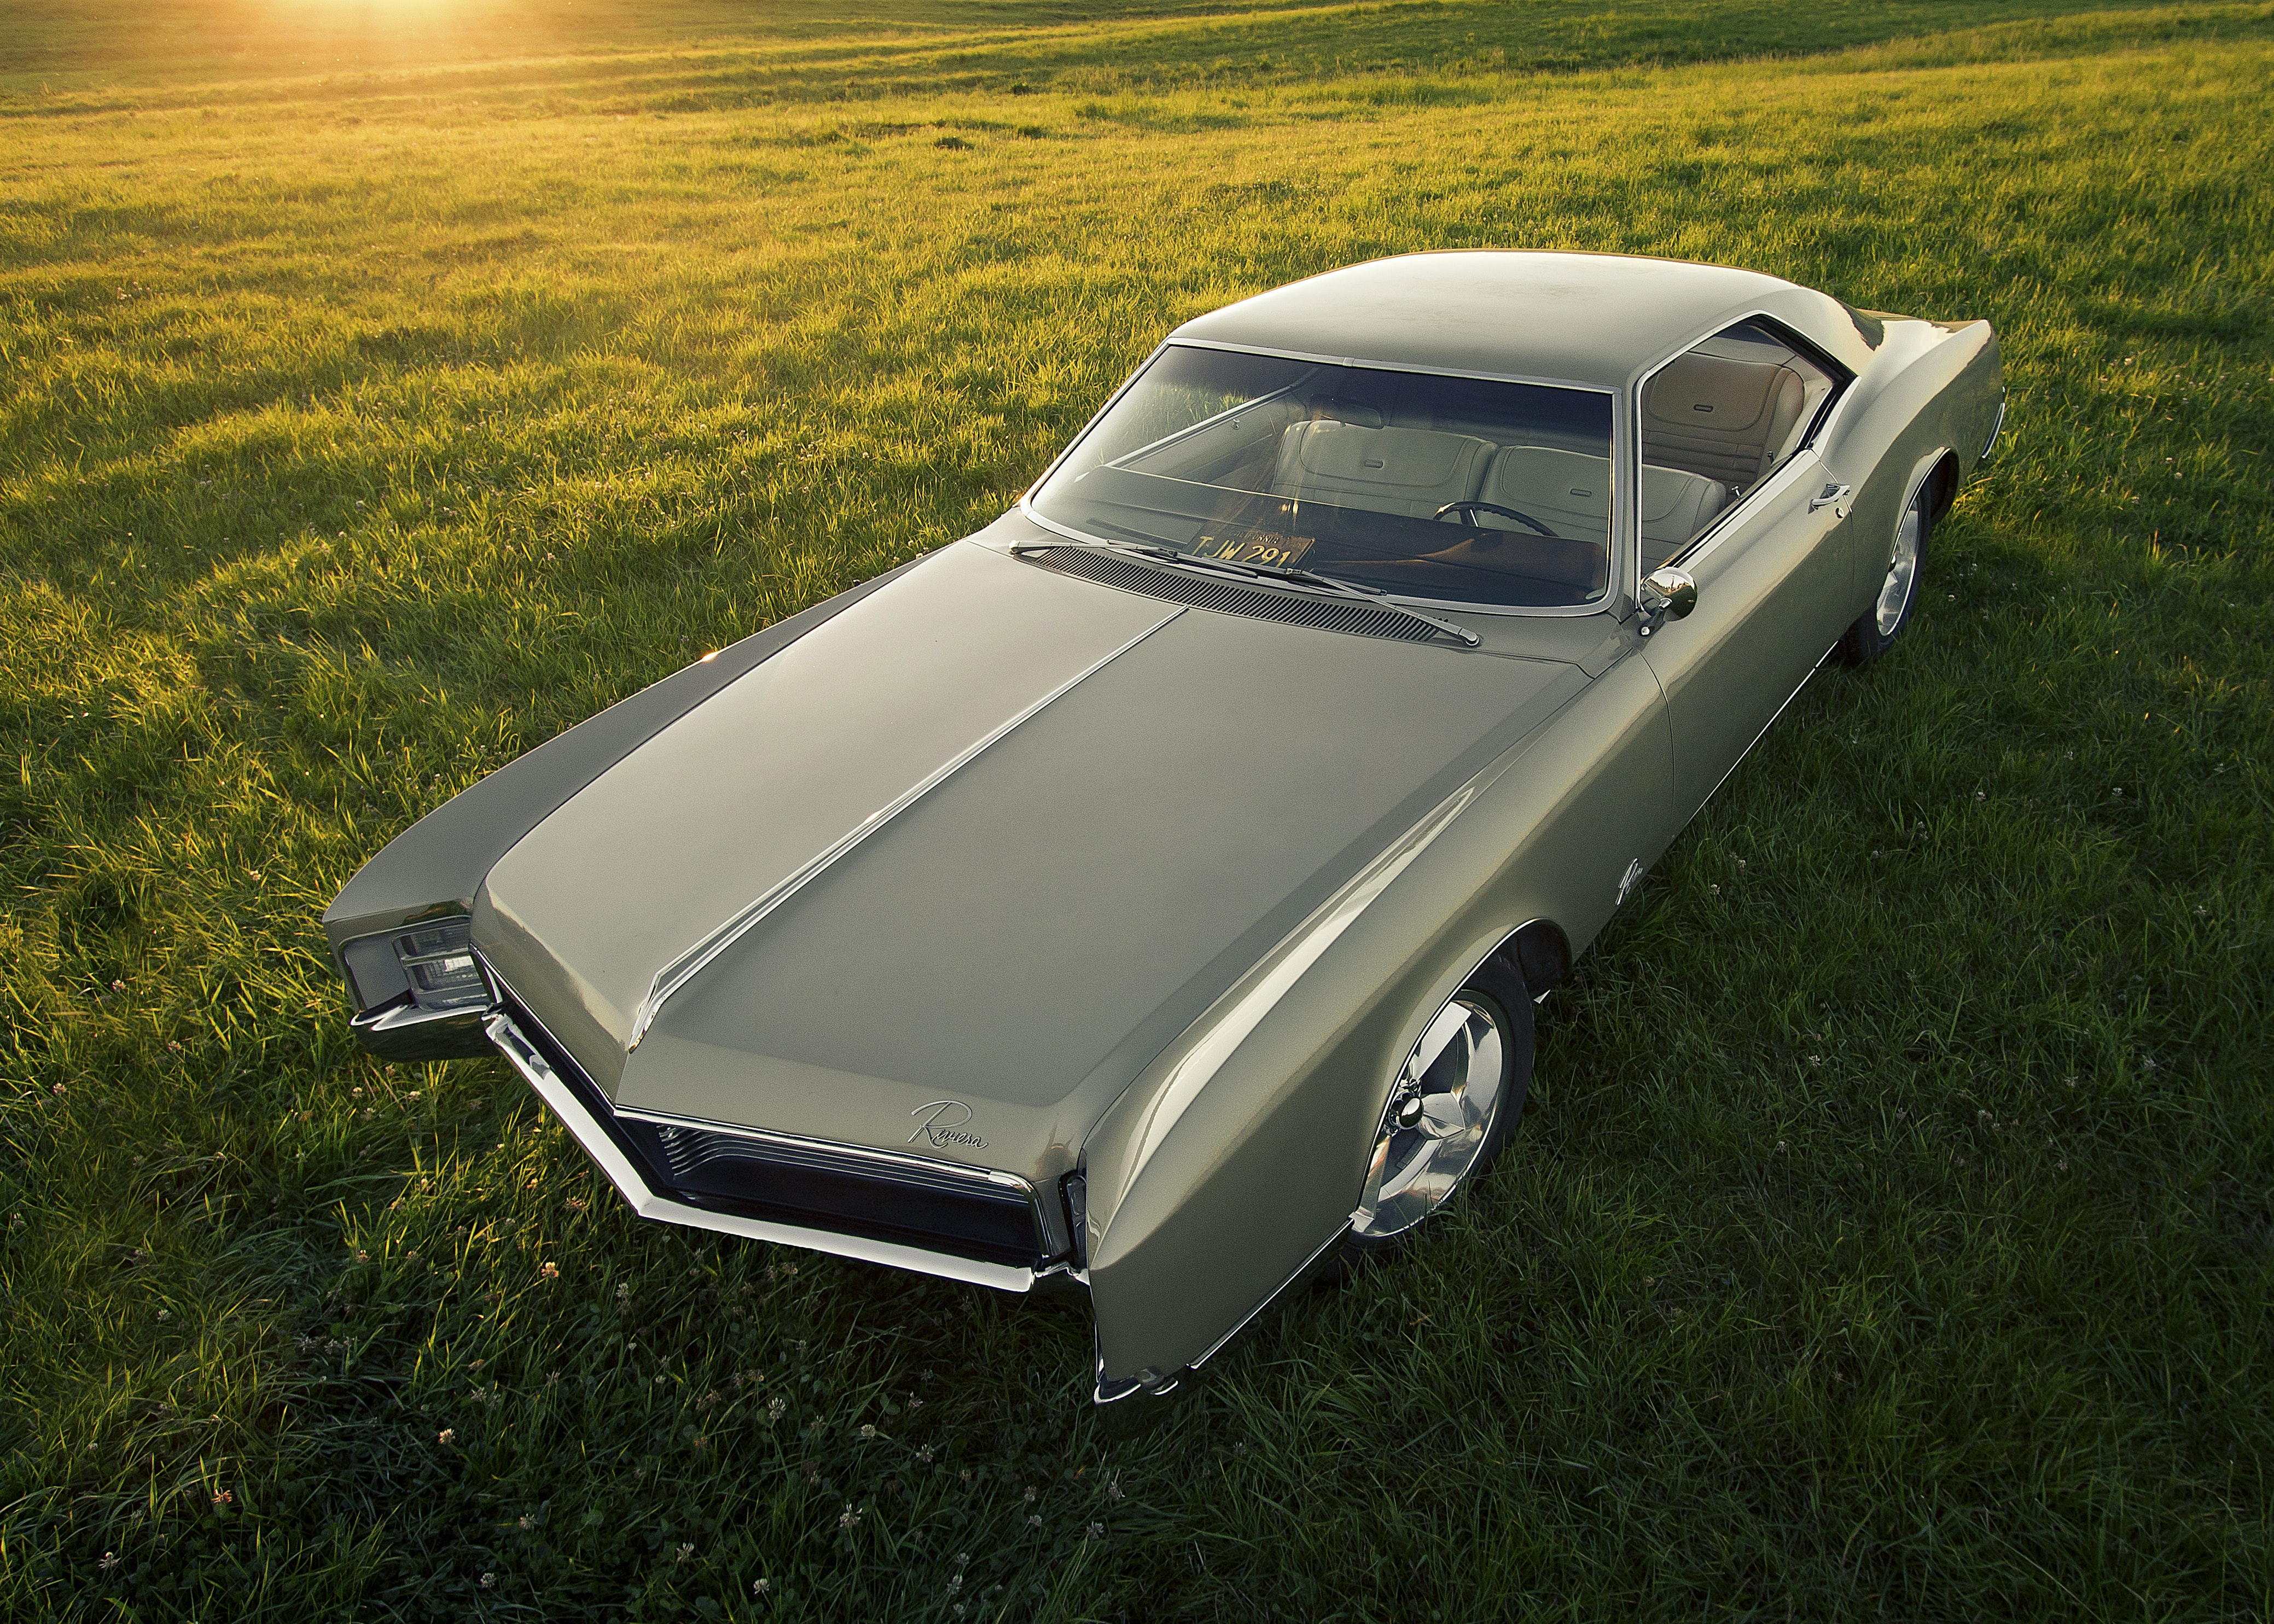 gray coupe on grass field